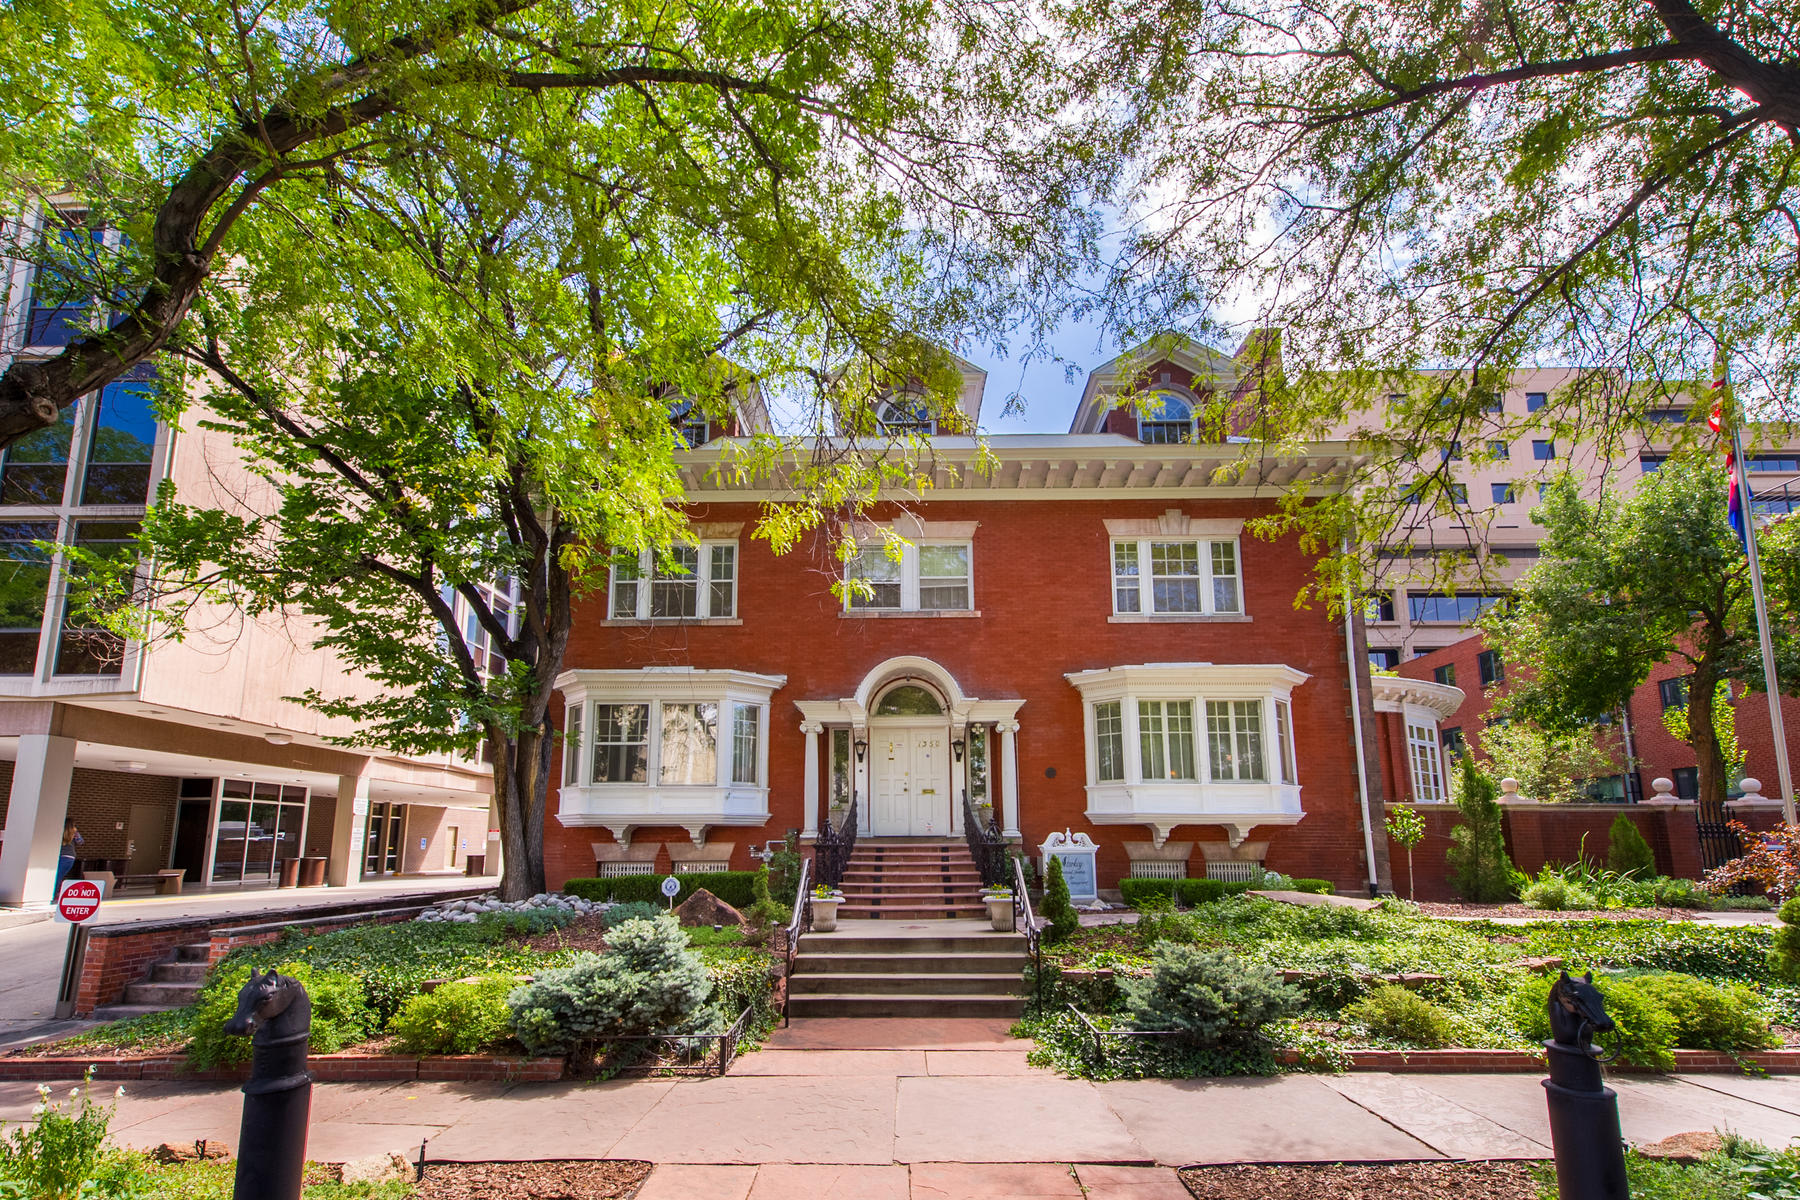 Single Family Home for Sale at Historic Denver Landmark! 1350 n Logan Street Denver, Colorado 80203 United States